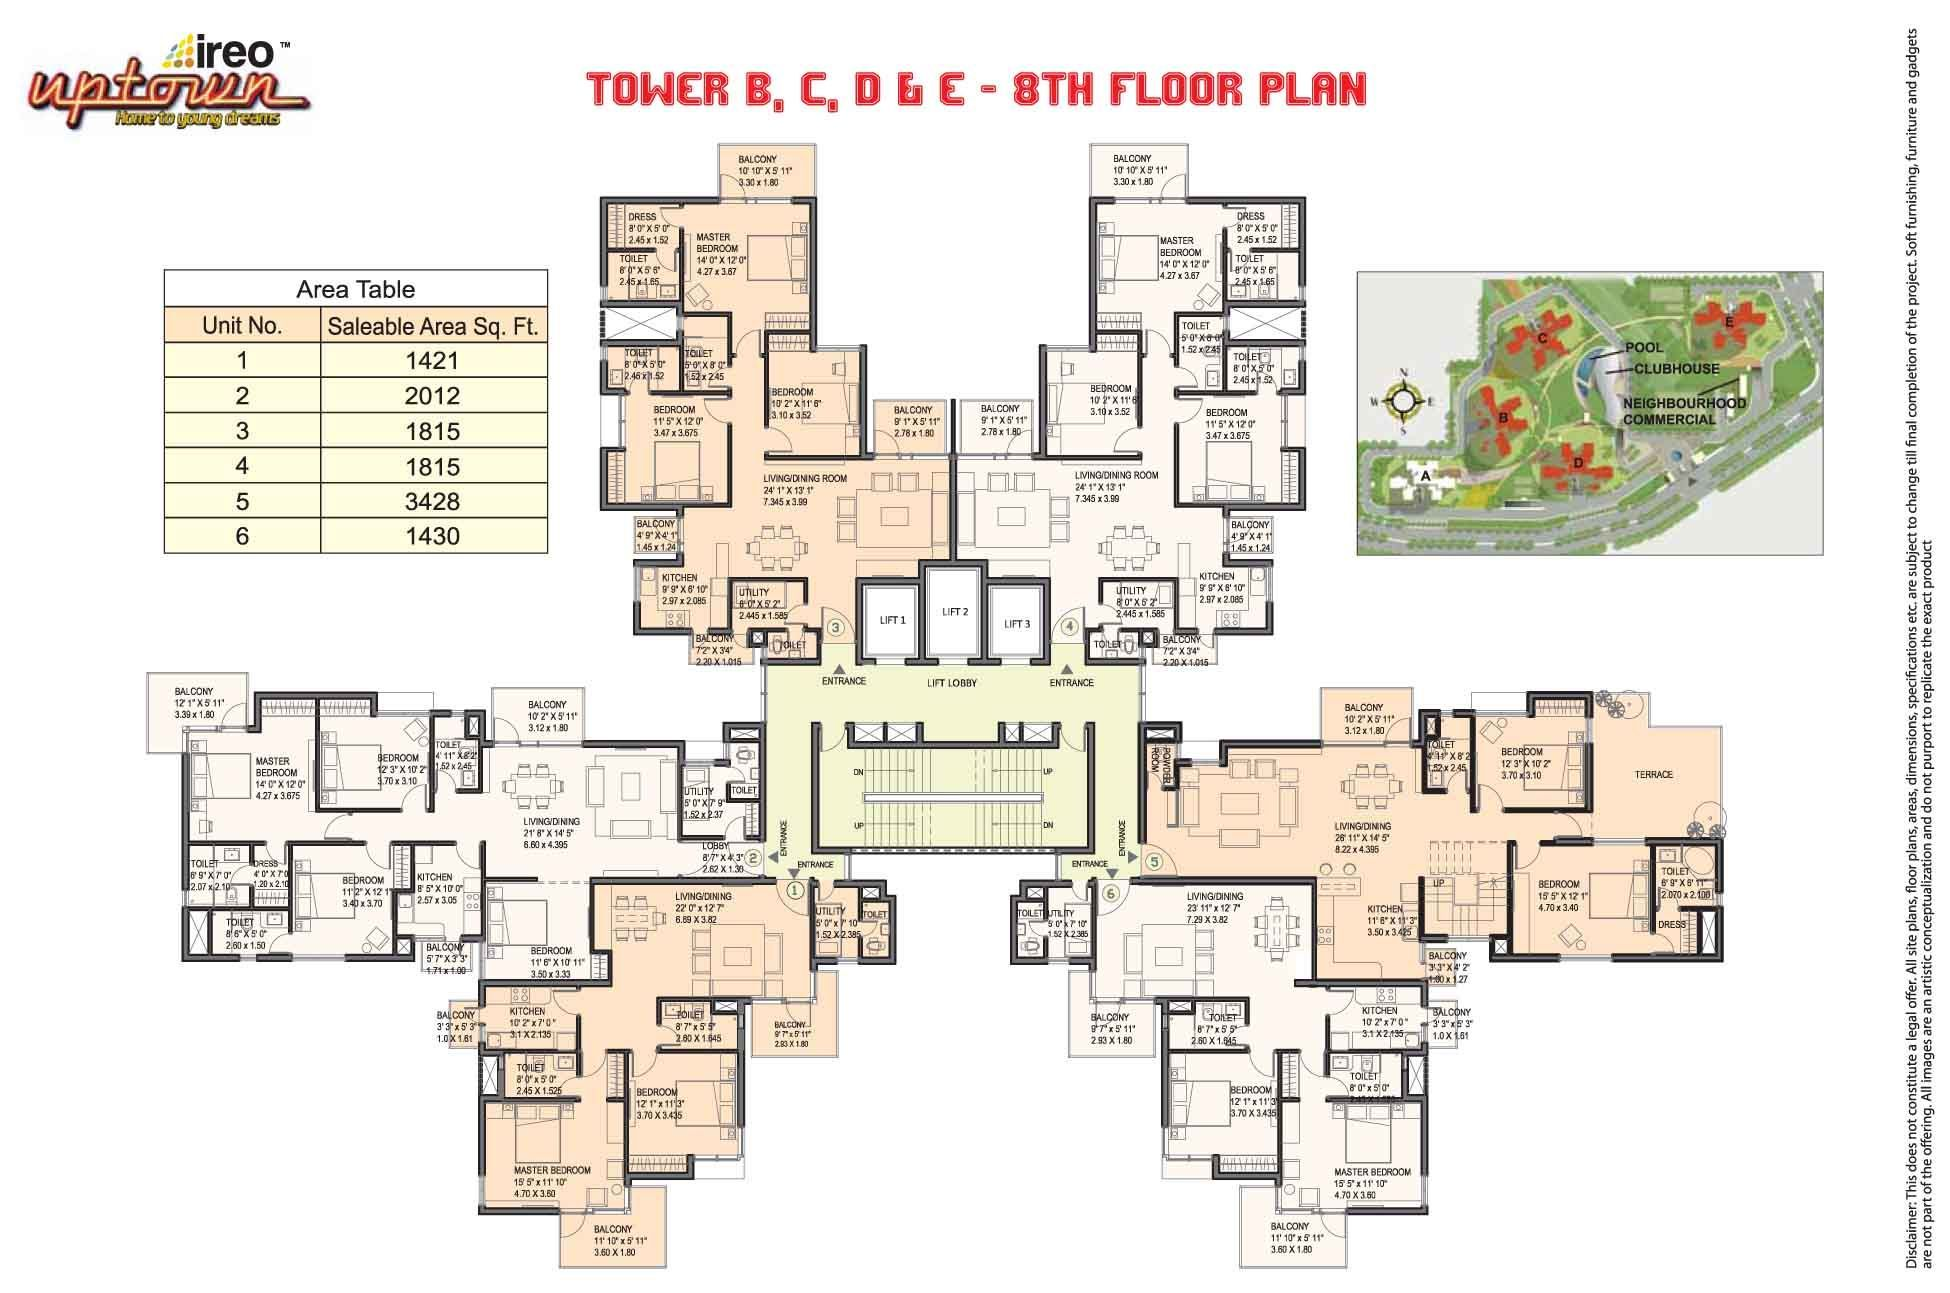 High Rise Apartment Building Floor Plans - Beste Awesome Inspiration ...